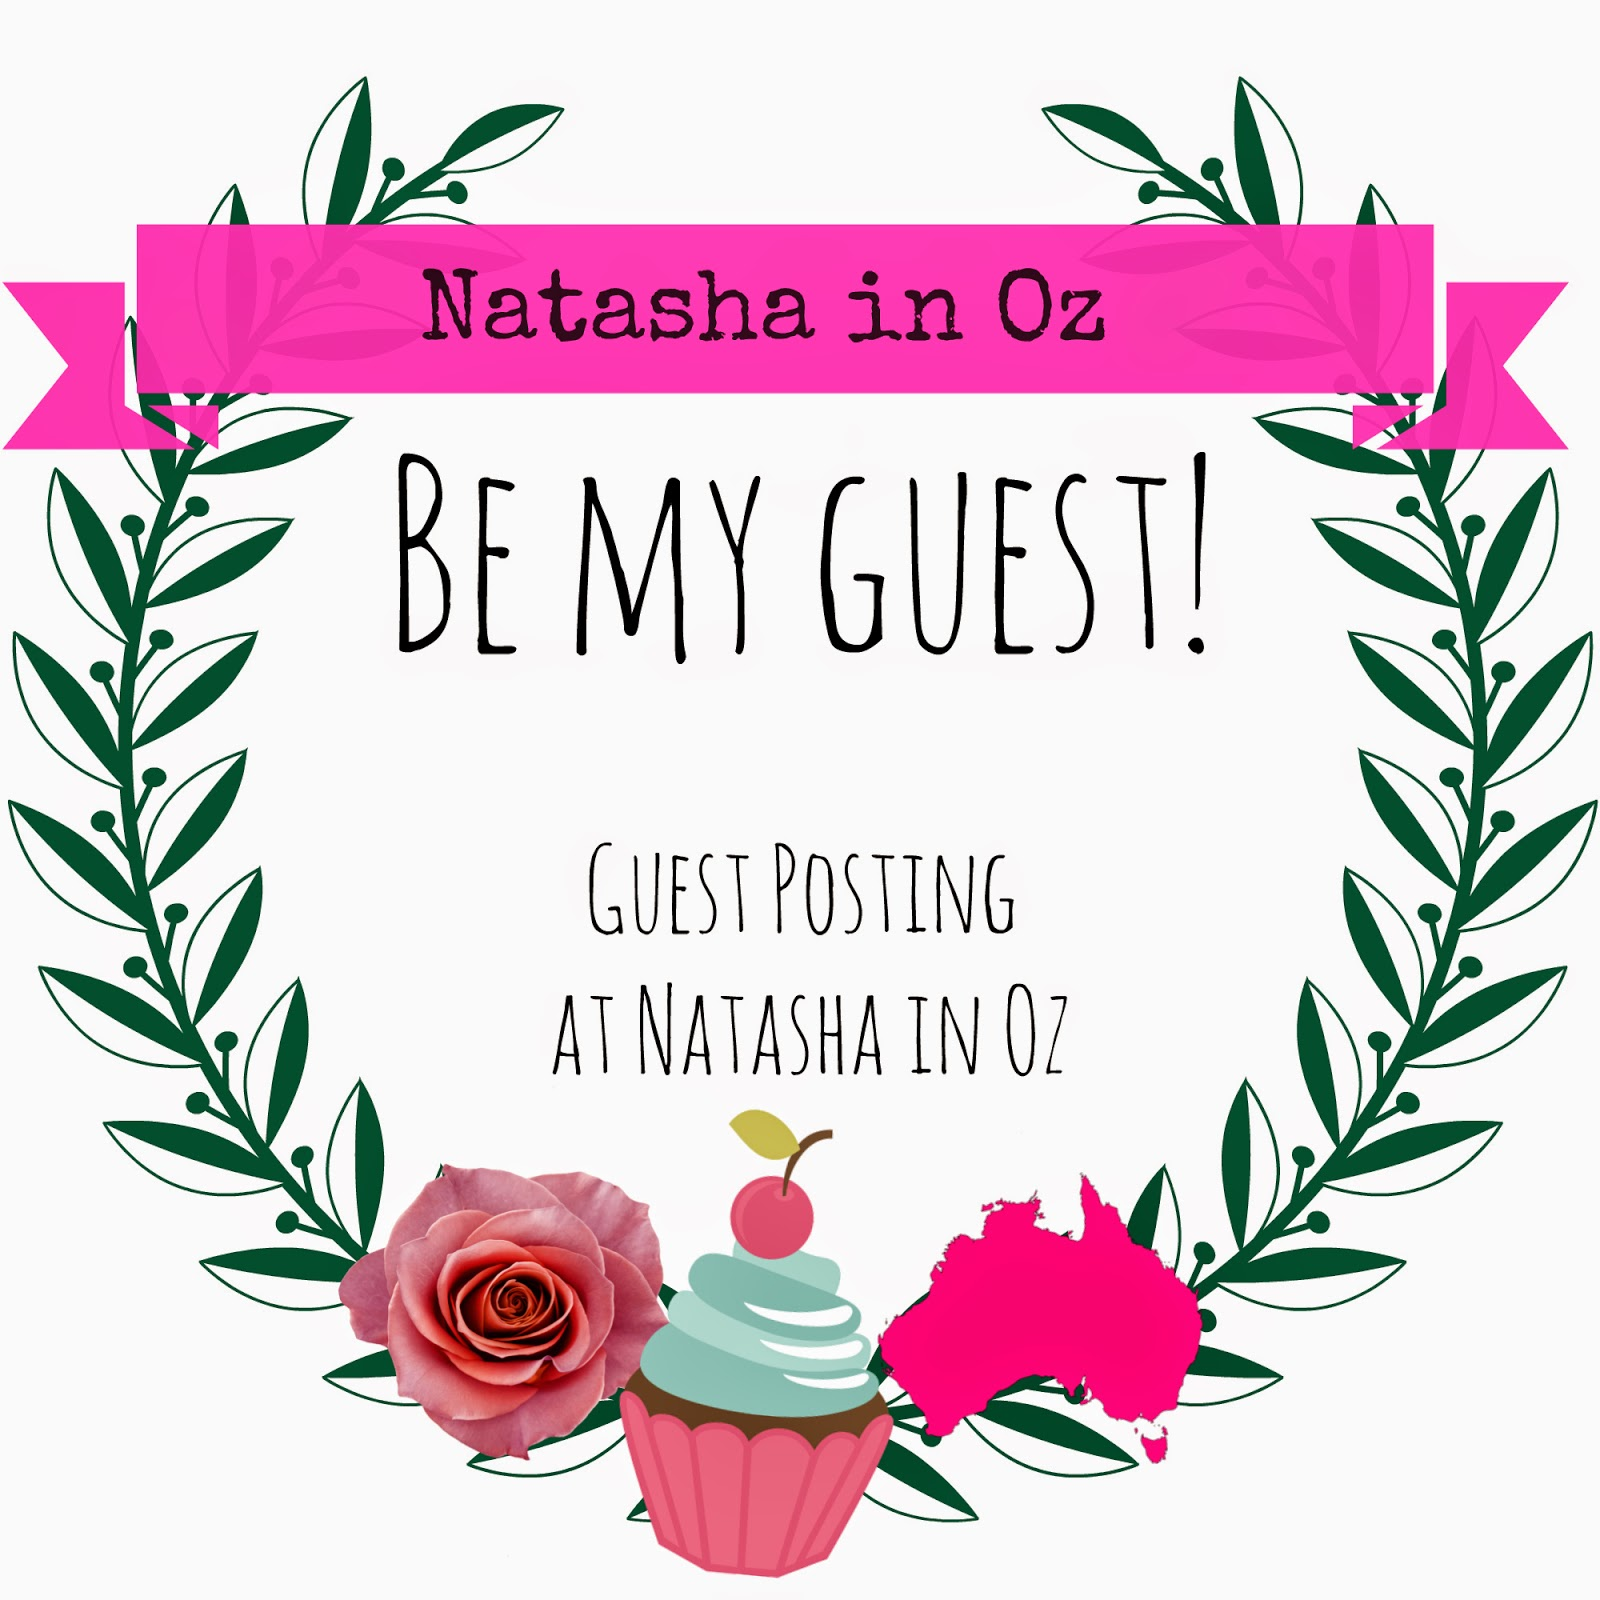 Guest Blogging @ Natasha in Oz